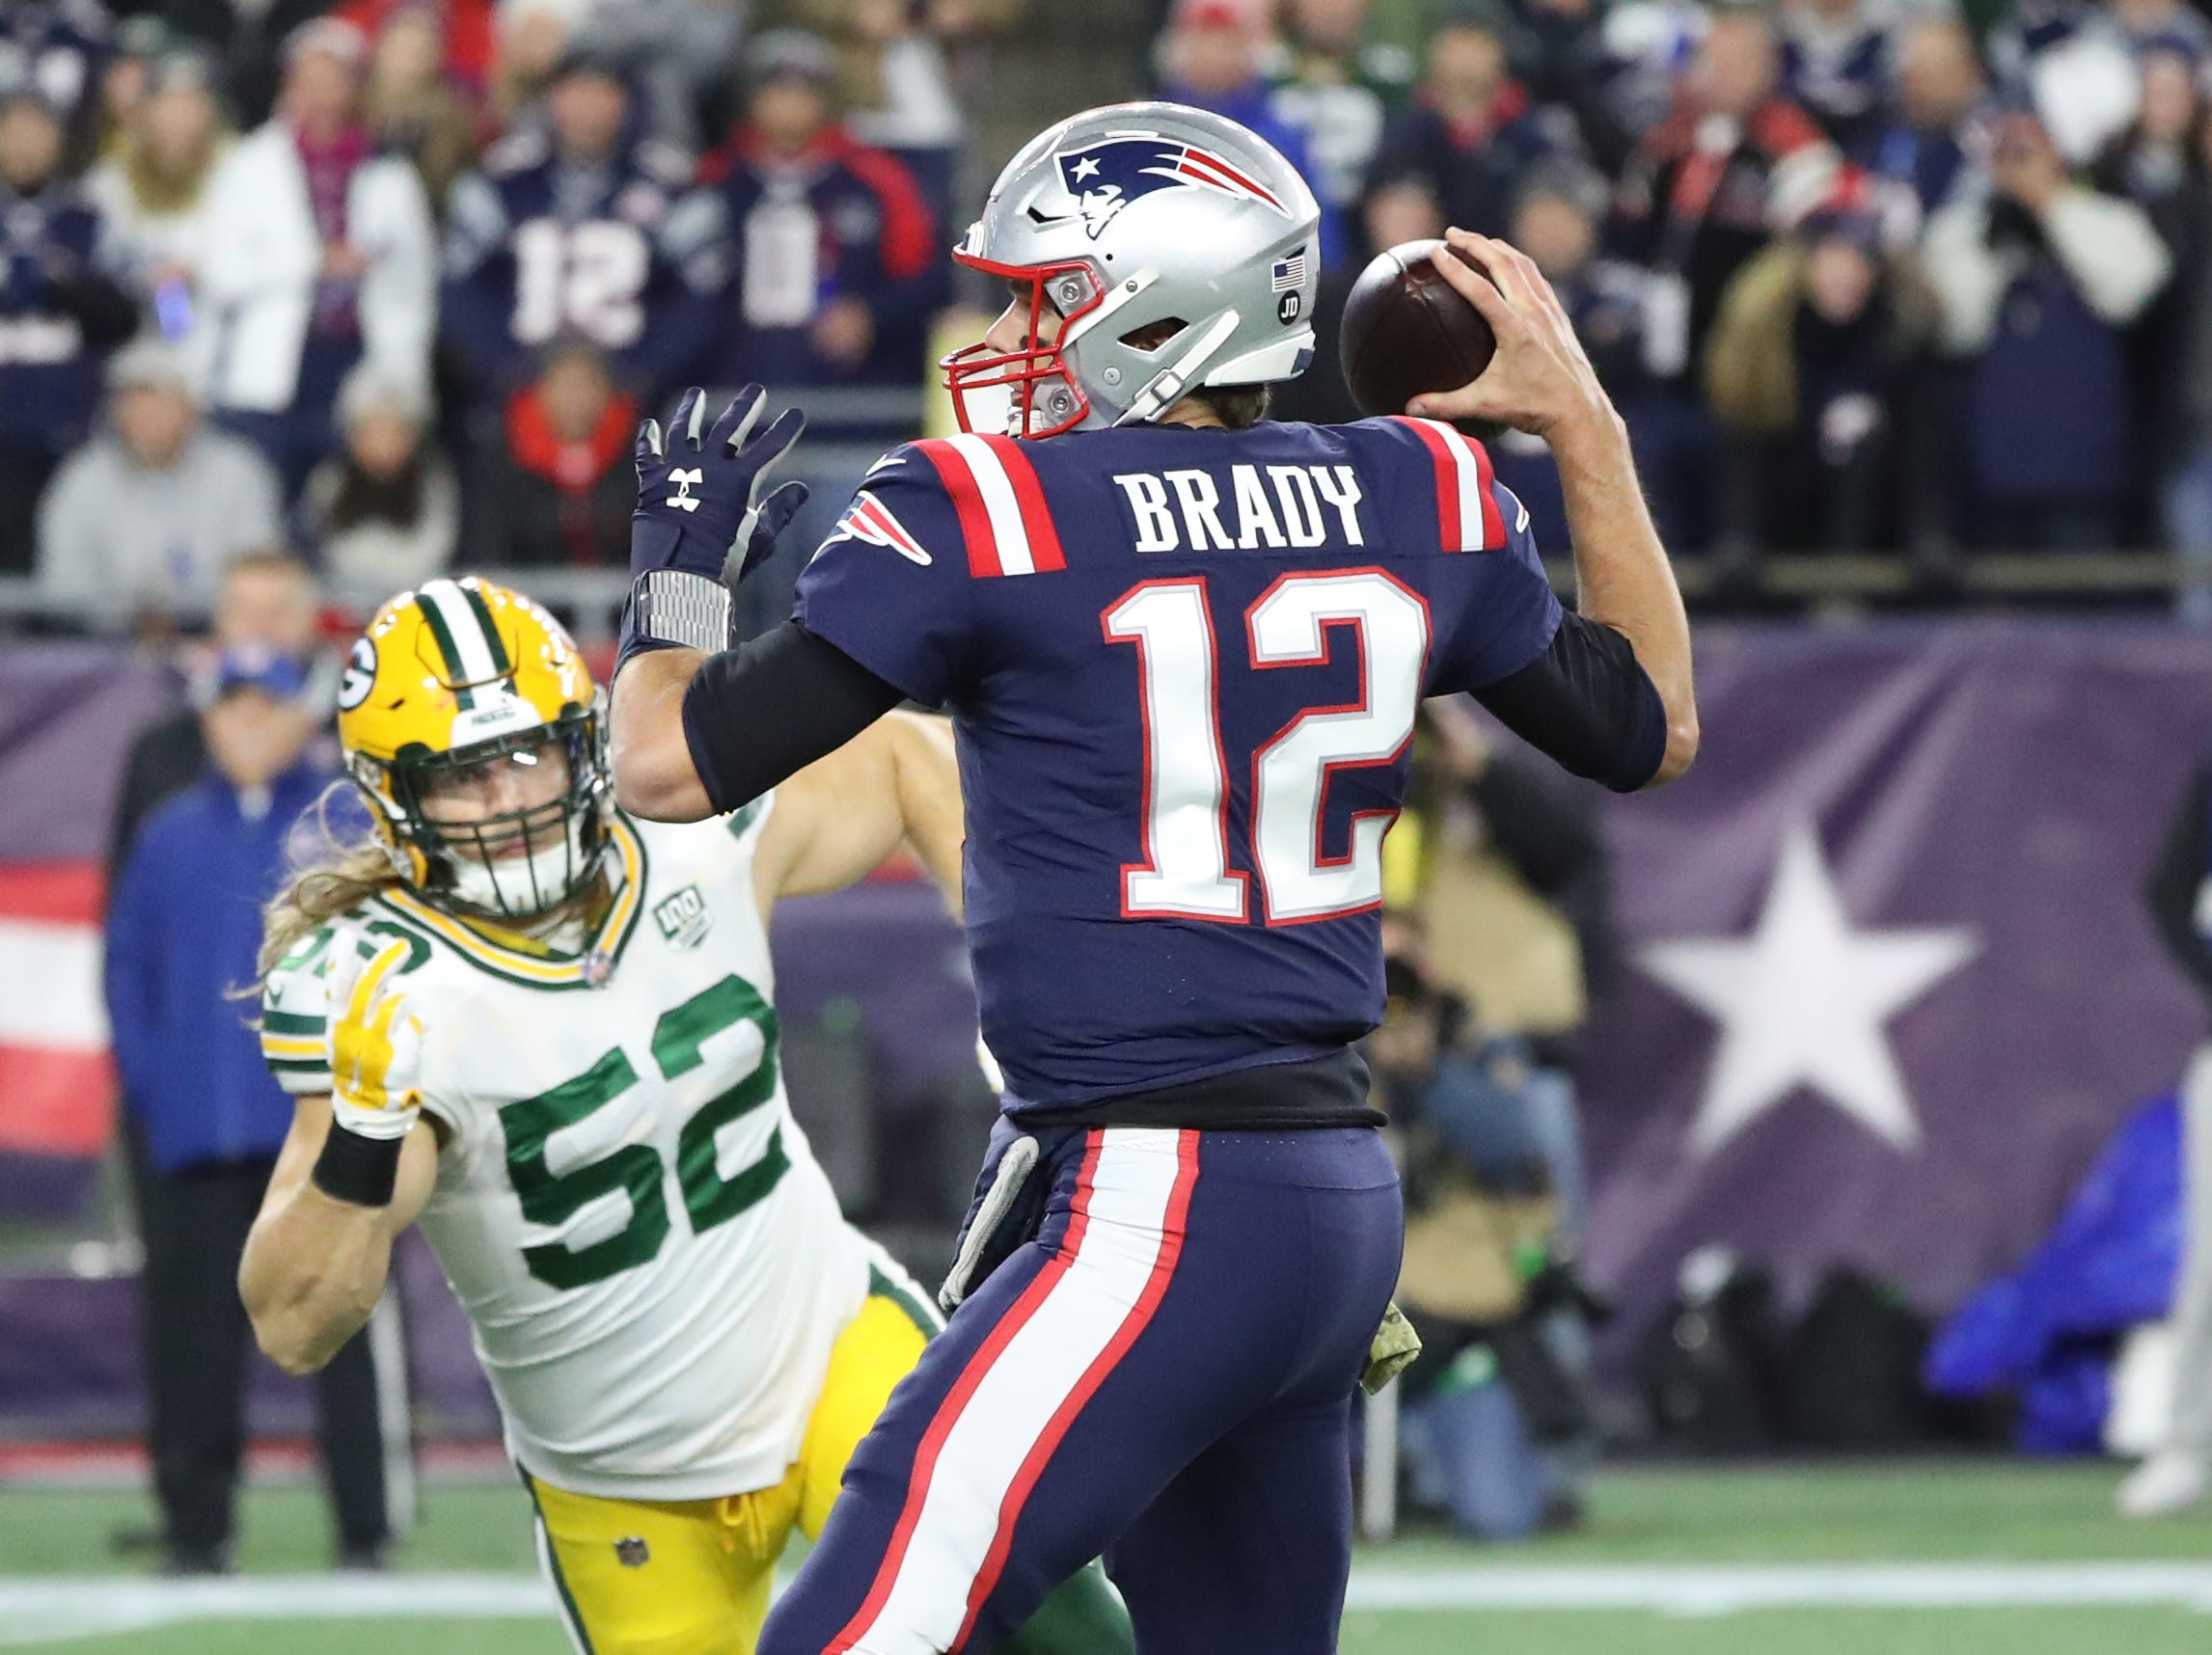 Green Bay Packers outside linebacker Clay Matthews (52) tries to pressure quarterback Tom Brady (12) against the New England Patriots Sunday, November 4, 2018 at Gillette Stadium in Foxborough, Mass.